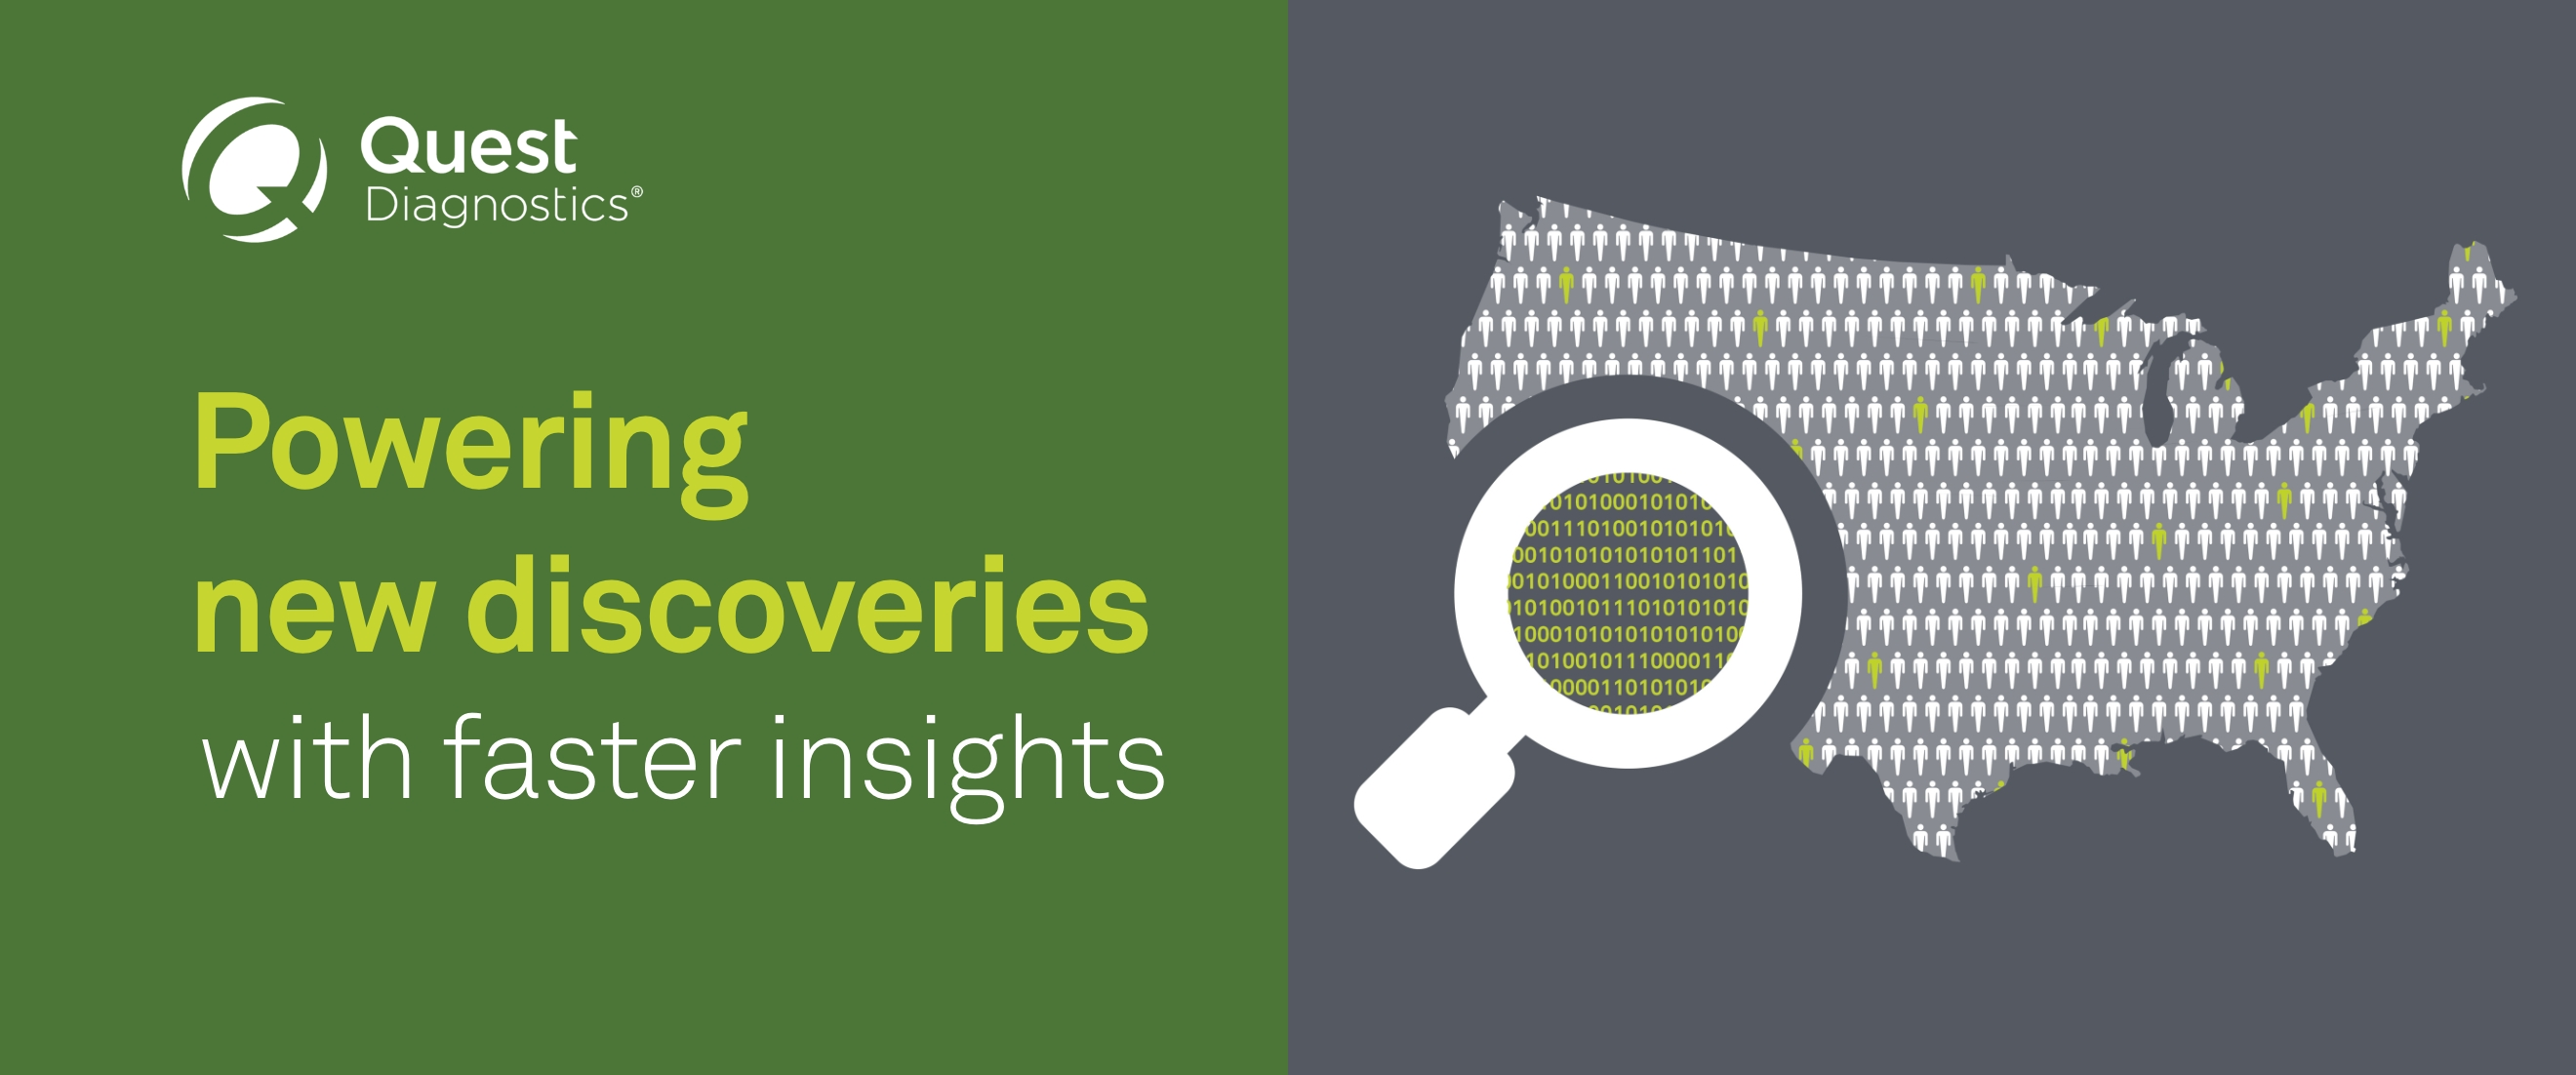 Quest Diagnostics® Powering new discoveries with faster insights